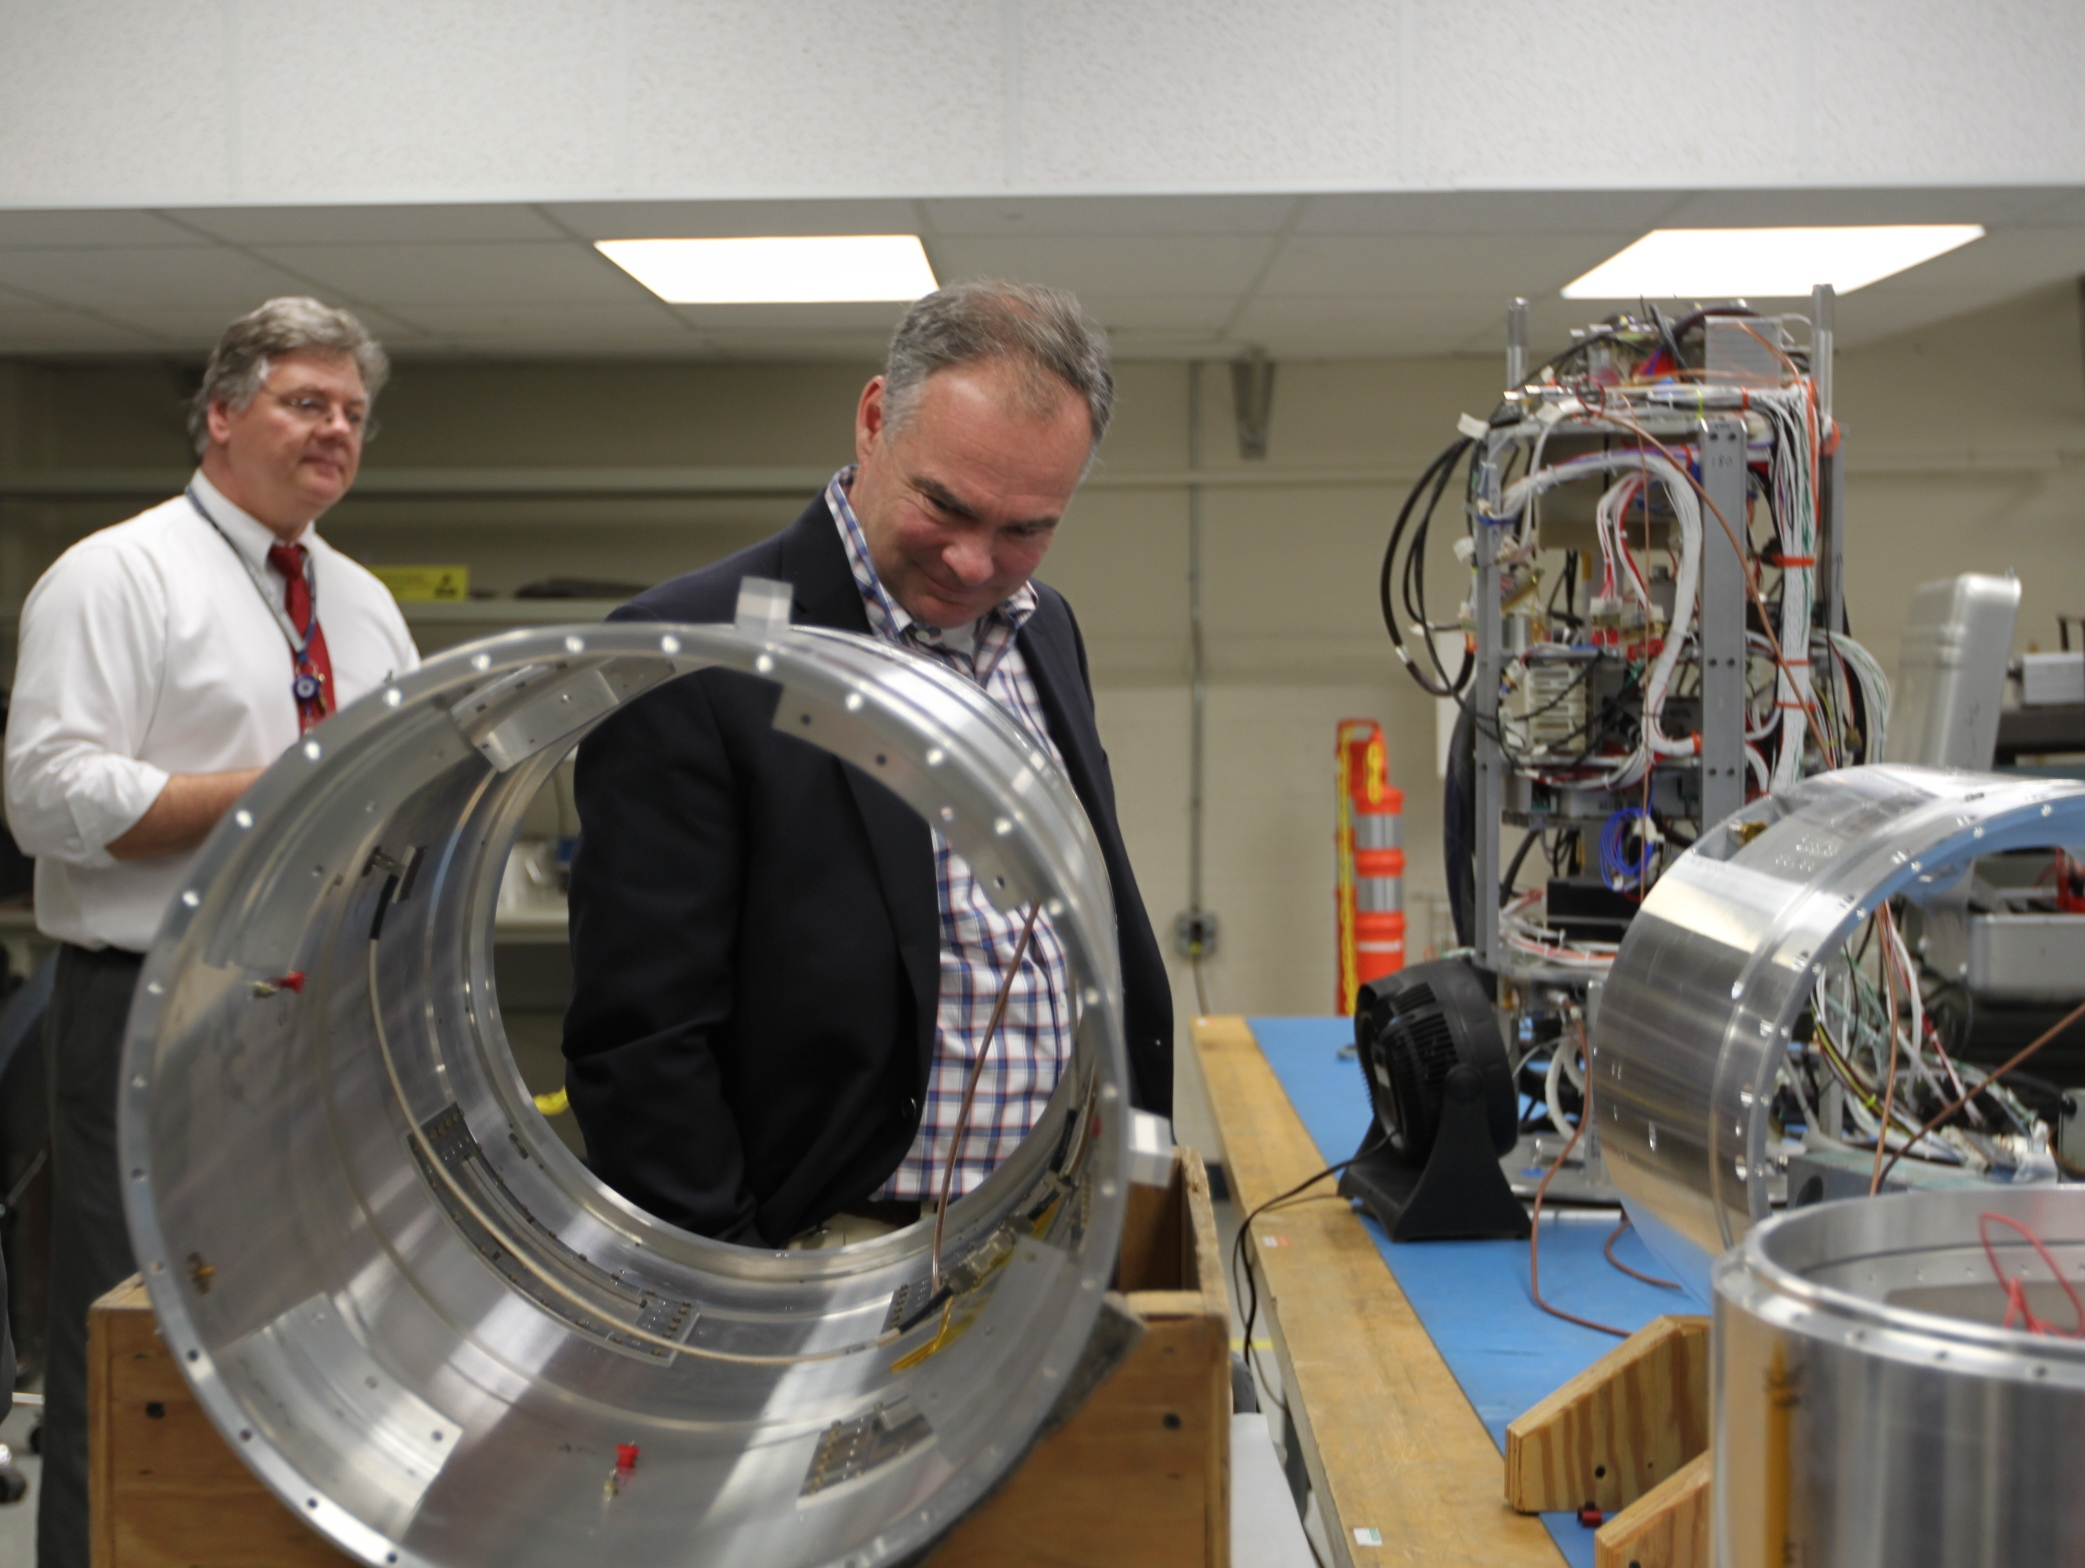 Virginia Senator Tim Kaine studies a payload skin section of a sounding rocket at Wallops Flight Facility.